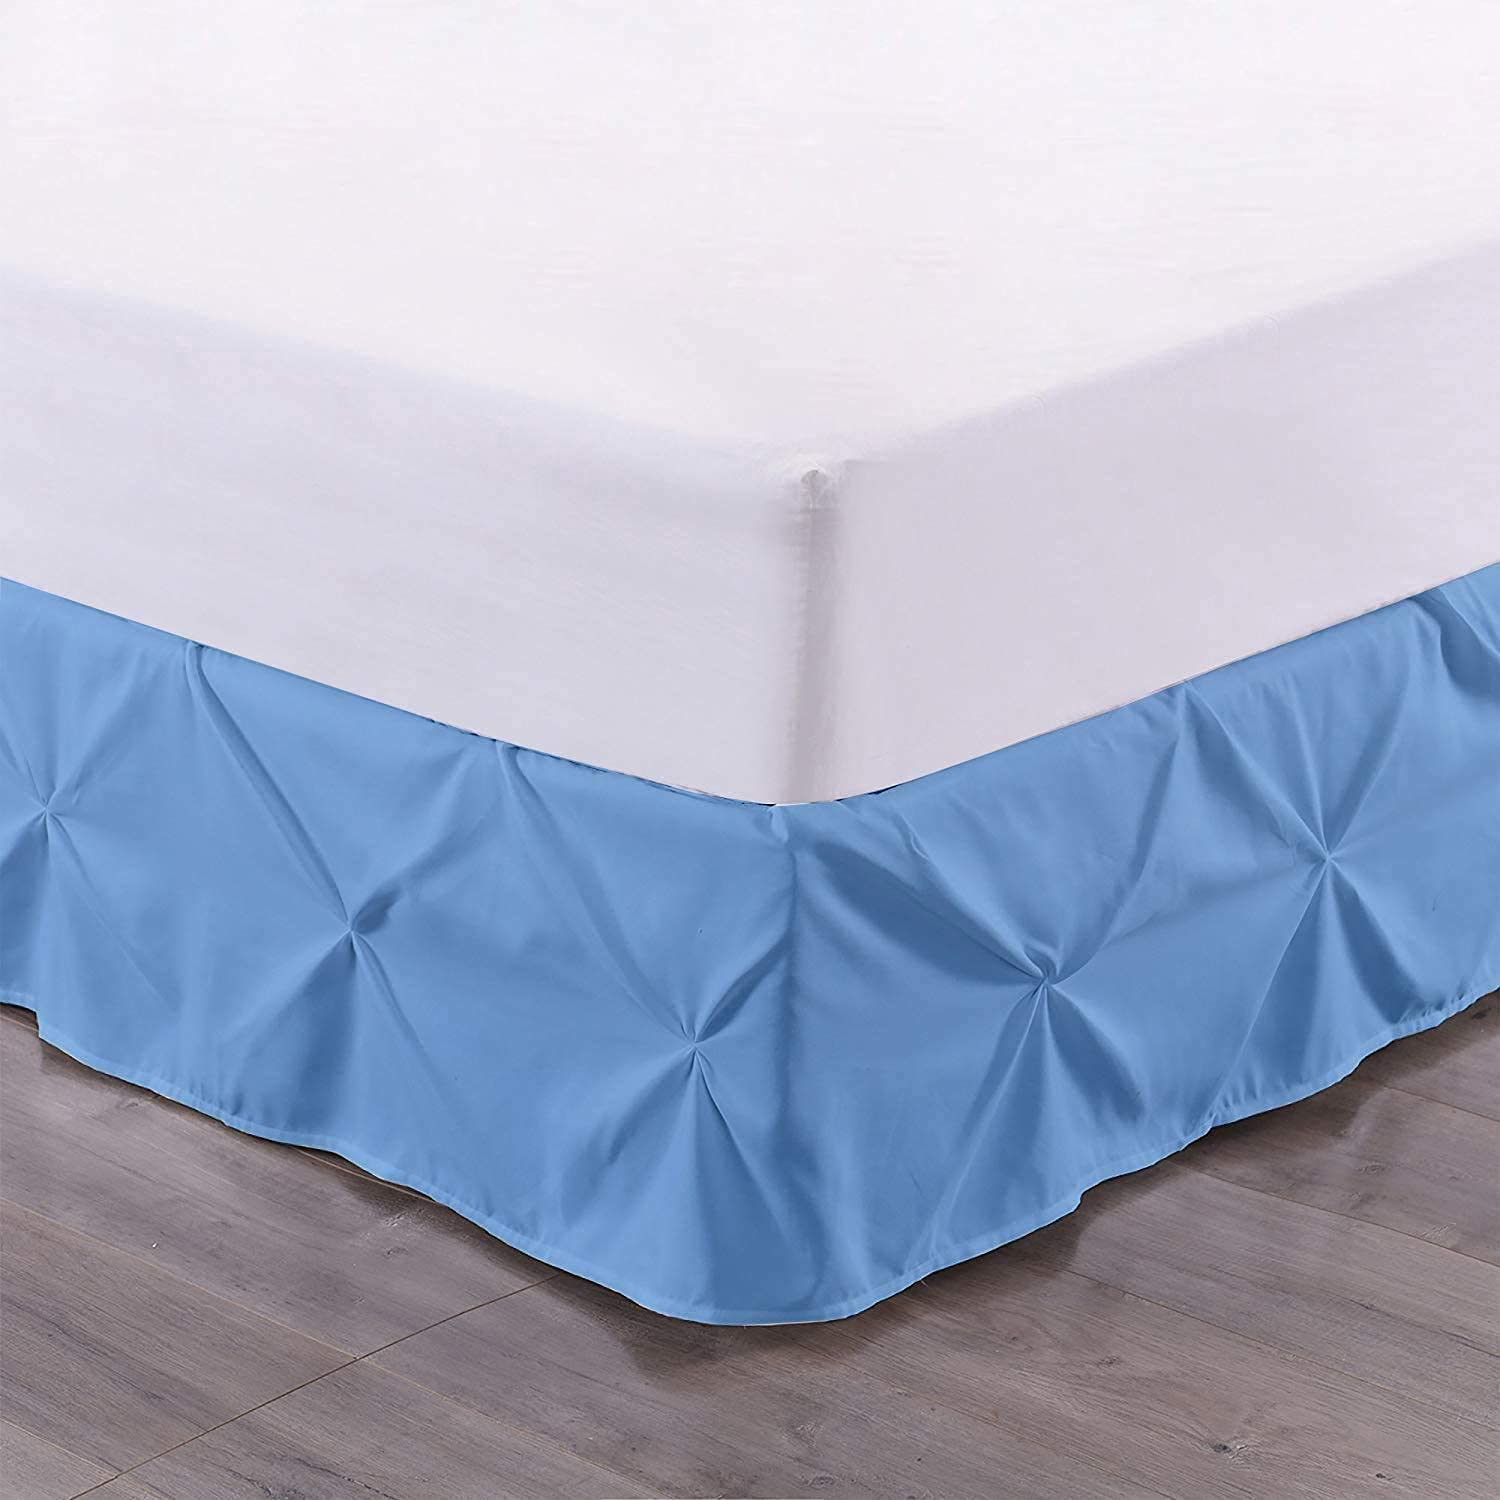 Bed Skirt - 100% Cotton Free shipping on posting reviews 800 B Pinch Thread Cheap super special price Count 1-Piece Pleated